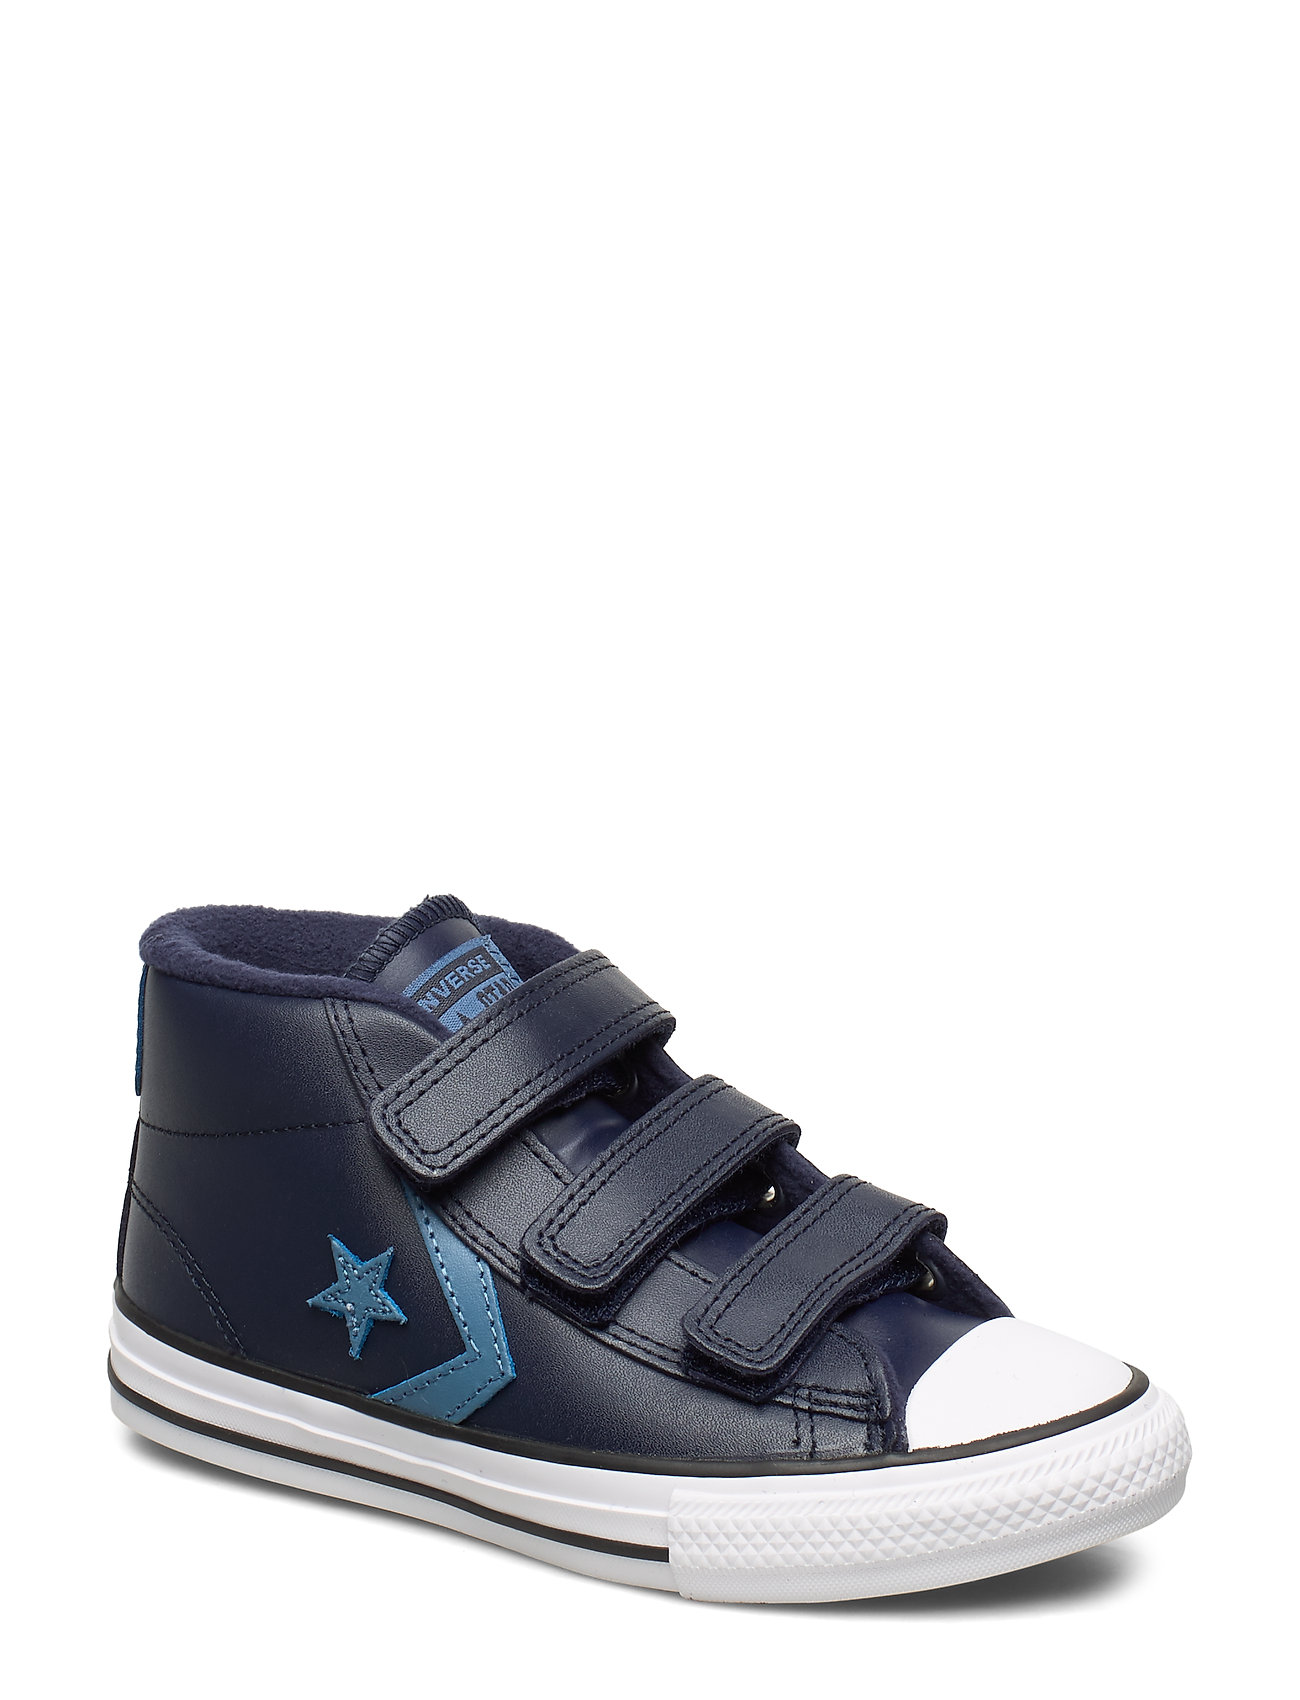 Converse STAR PLAYER 3V - MID - STEEL BLUE